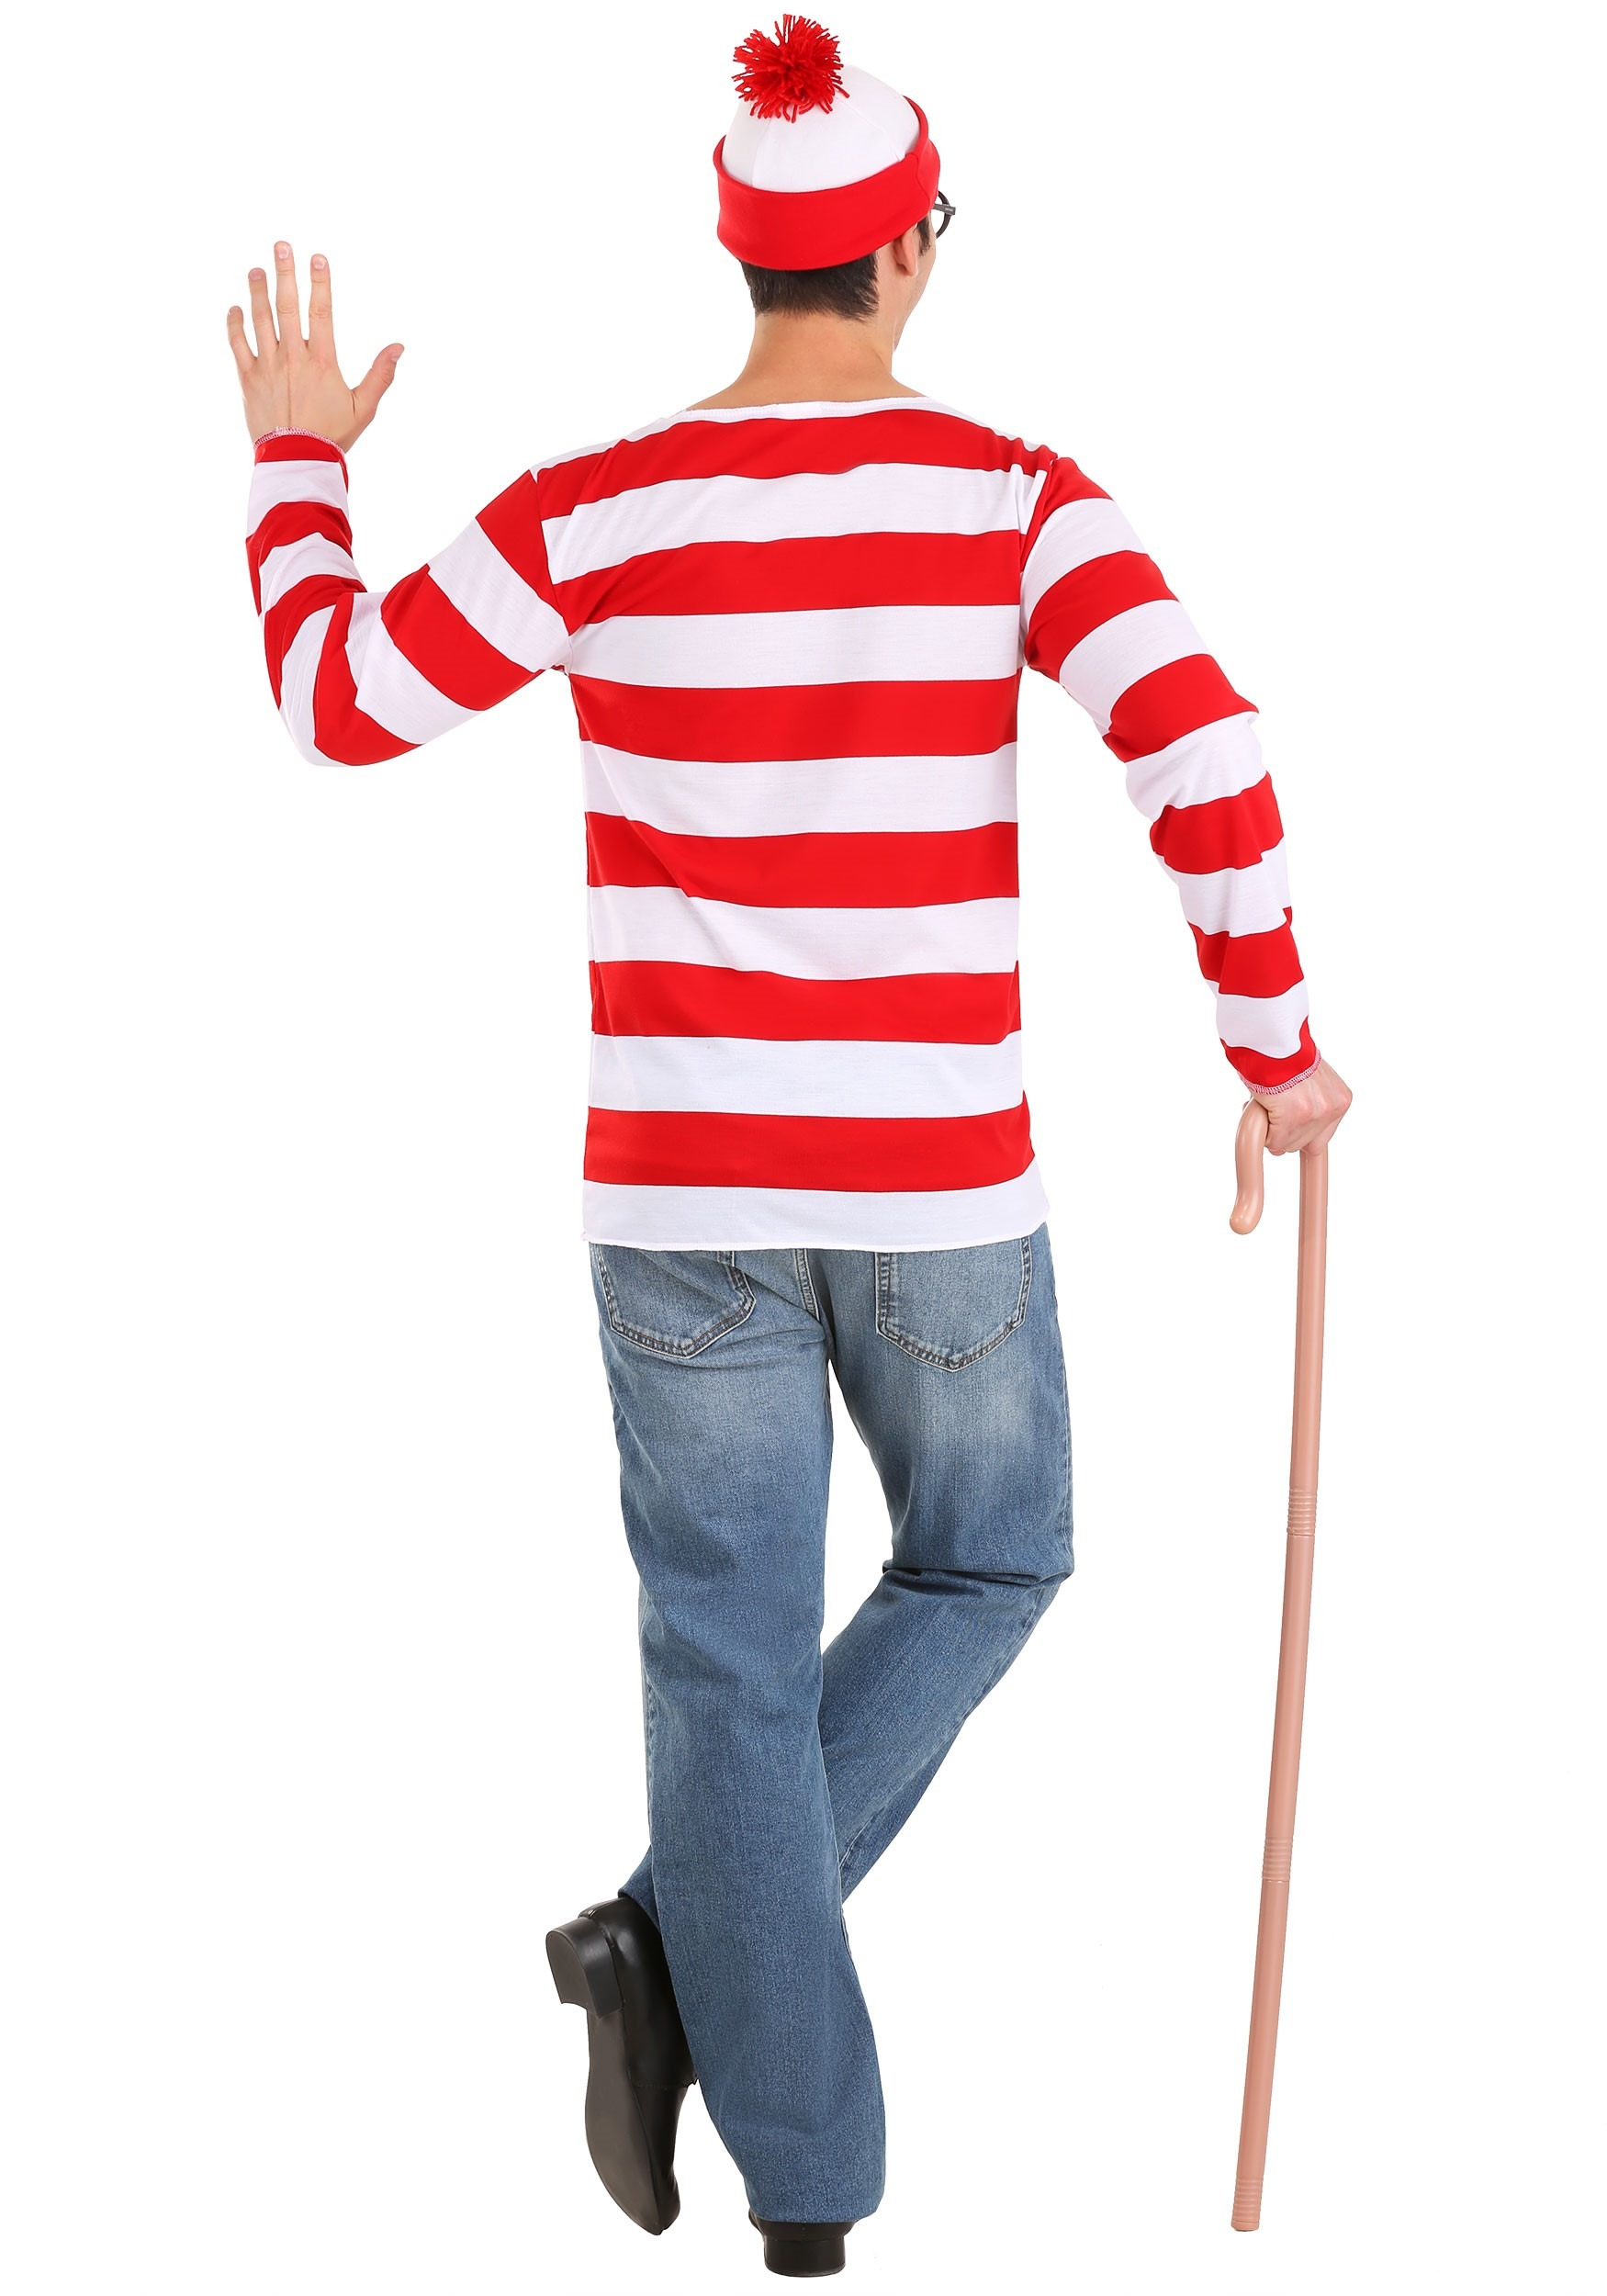 Large Frame Round Glasses Where 39;s Waldo Costume Where Is Waldo Halloween Costumes